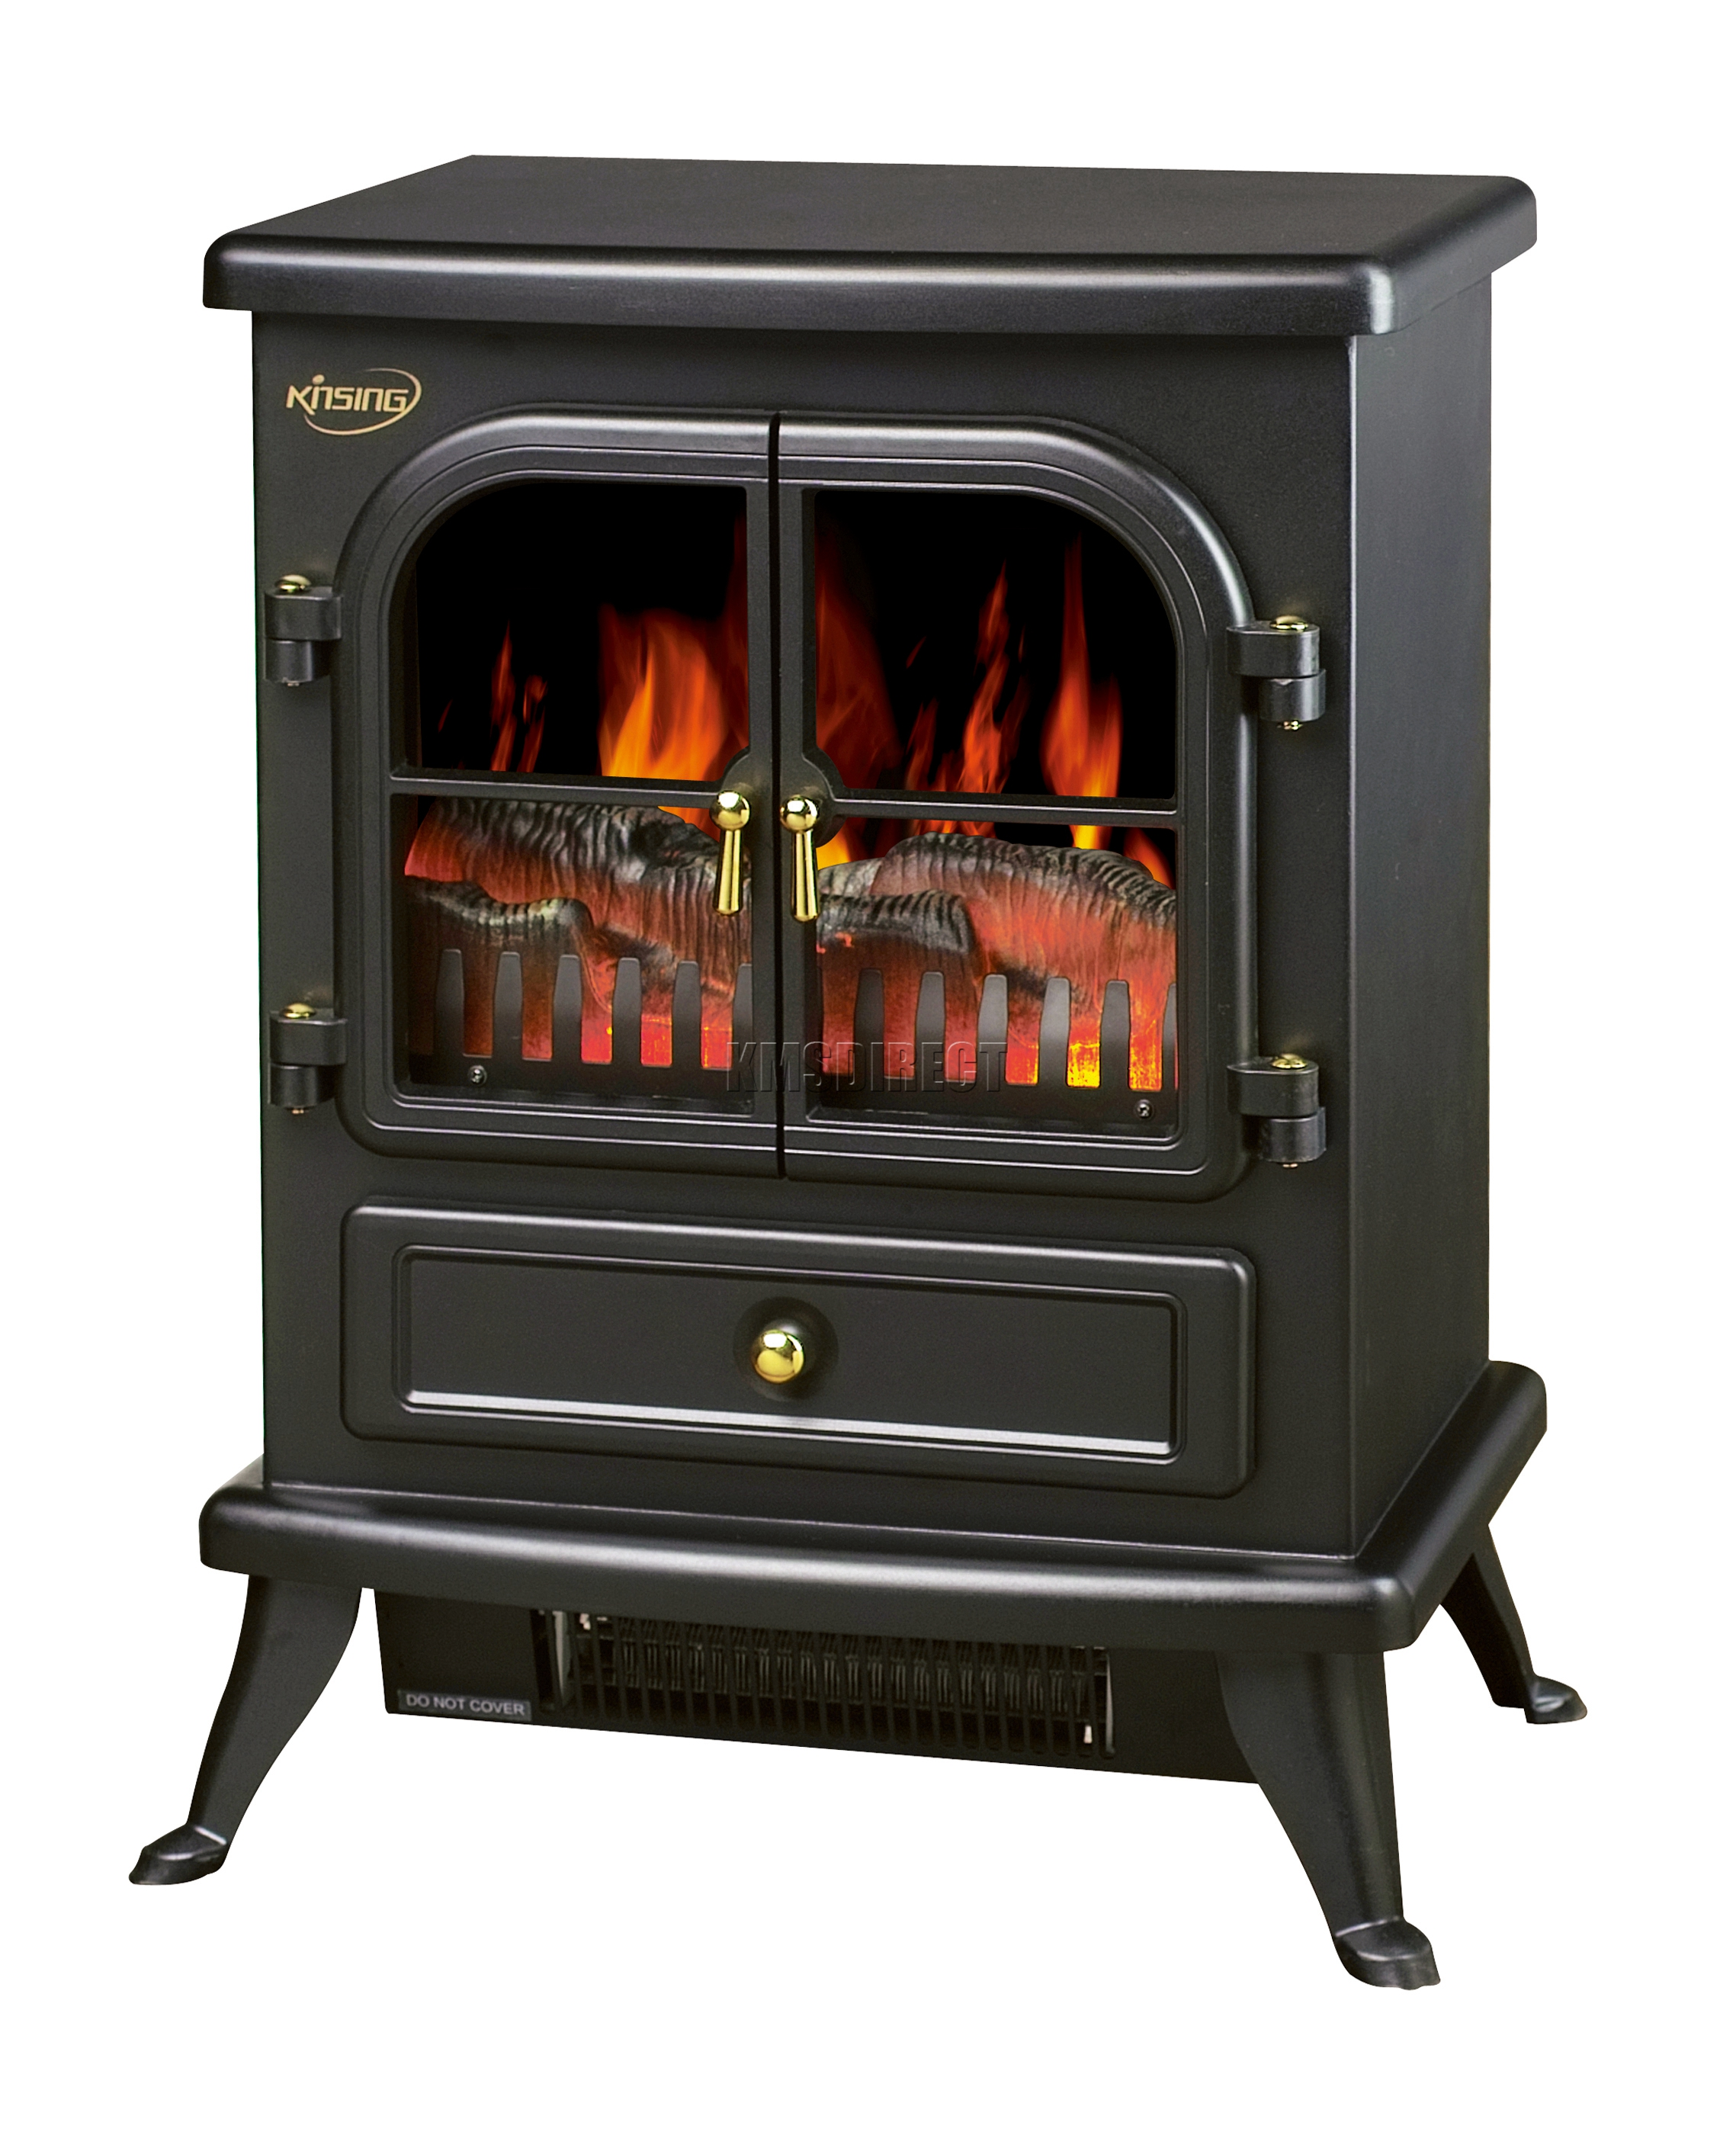 Livin Flame Elektrische Sfeerhaard New 1850w Log Burning Flame Effect Stove Electric Fire